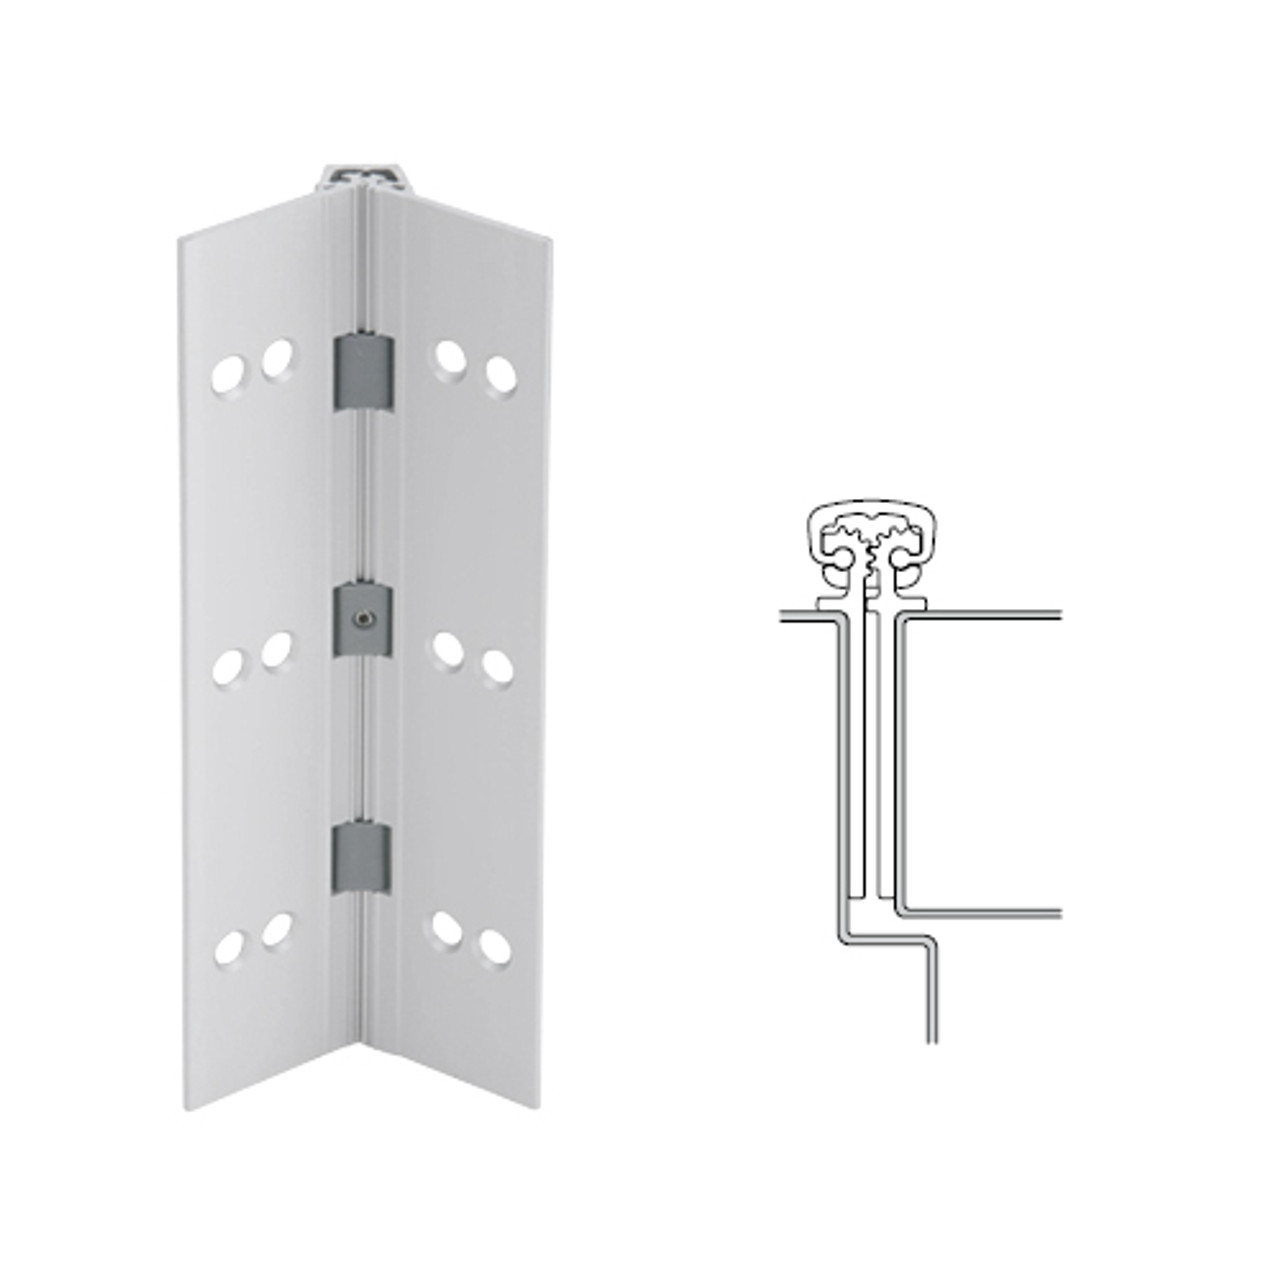 027XY-US28-85-EPT IVES Full Mortise Continuous Geared Hinges with Electrical Power Transfer Prep in Satin Aluminum